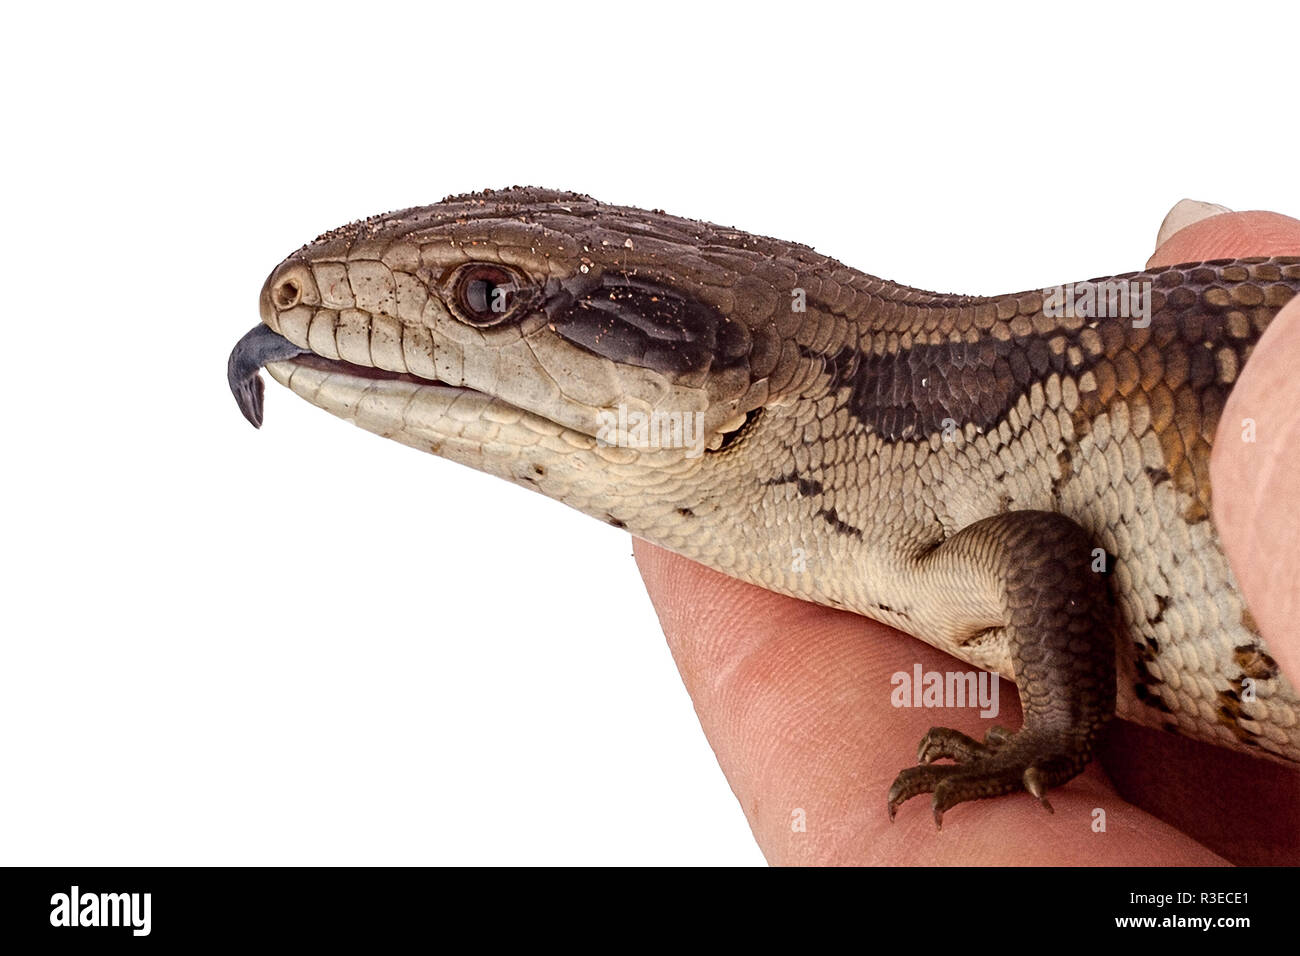 Australian Adolescent Eastern Blue Tongue Lizard showing blue tongue in defence - closeup isolated on white background - Stock Image